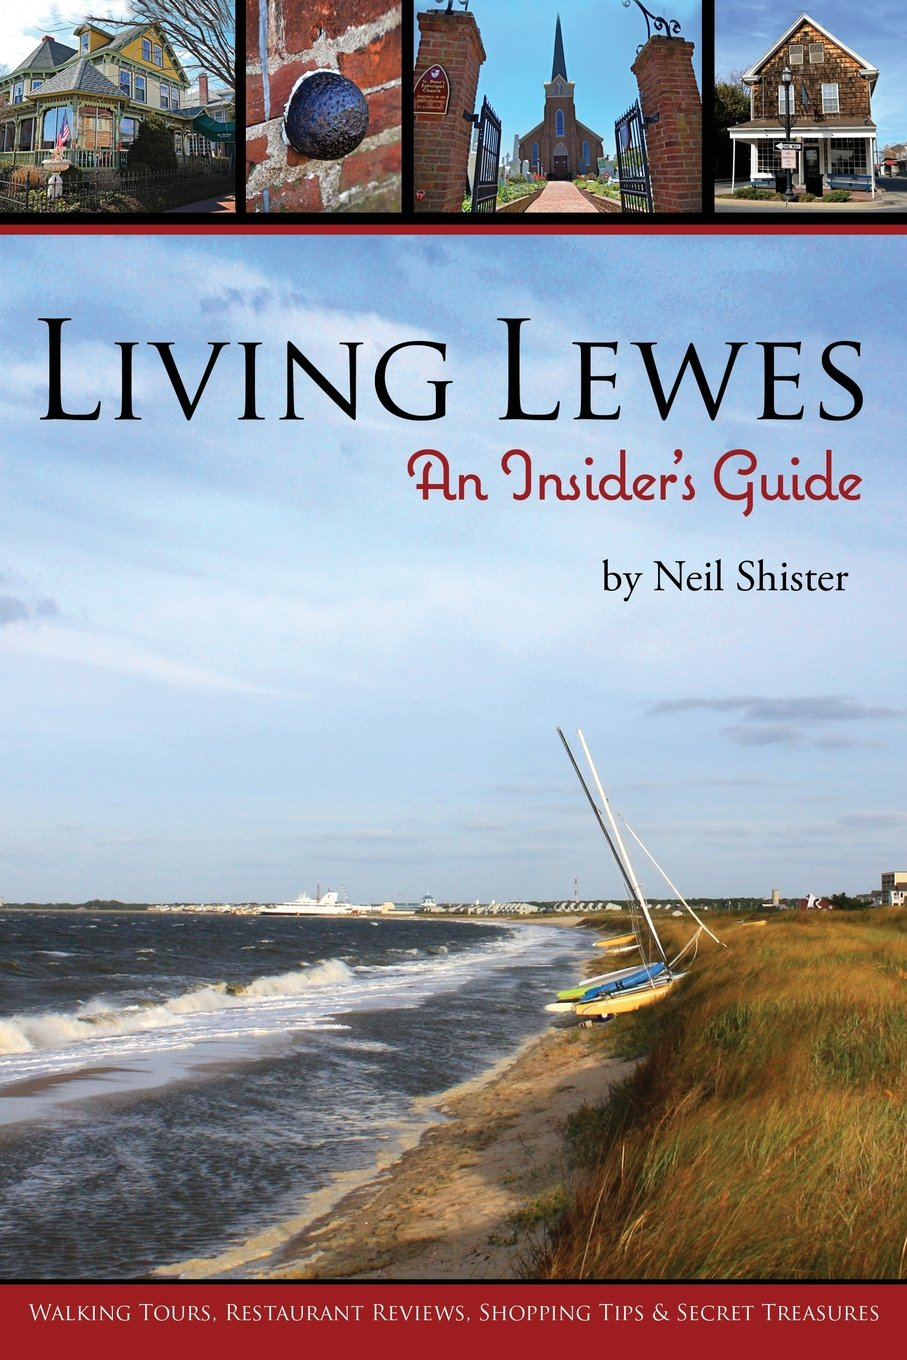 Living Lewes: An Insider's Guide